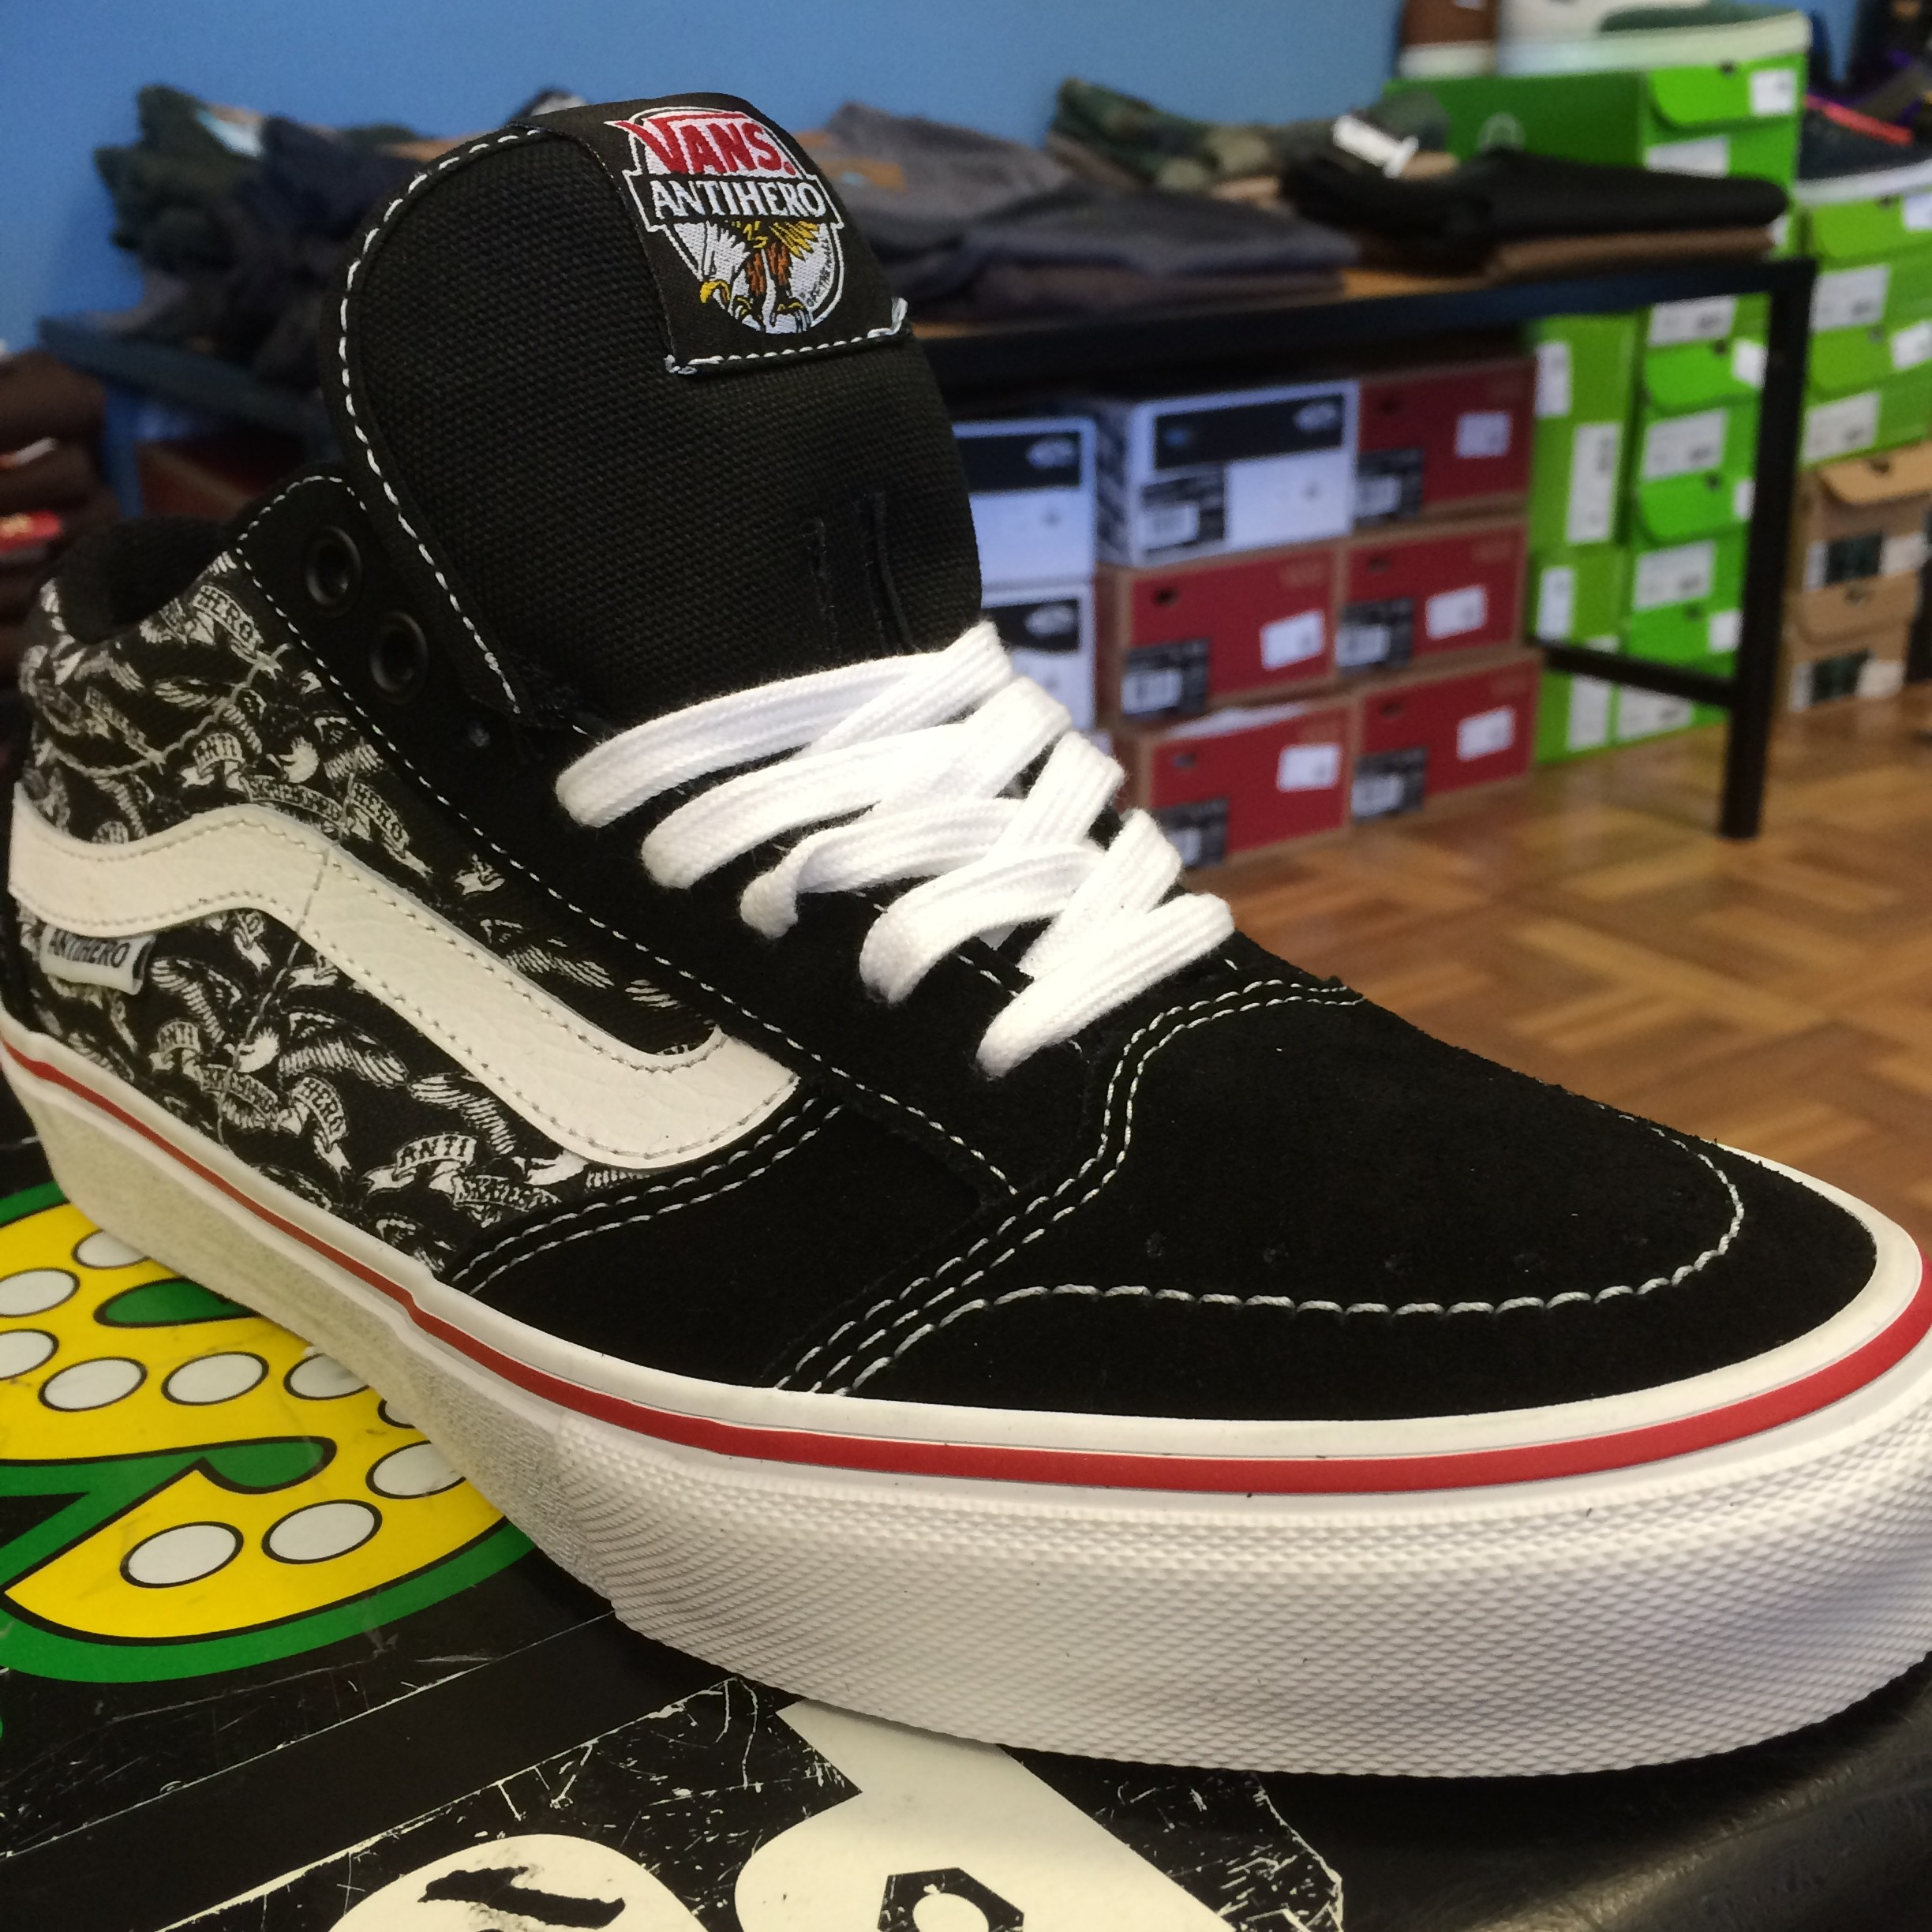 0fa43748e70cc7 New Shoes From Adidas   Vans Just Came In. Addias Busentiz Pro In ...